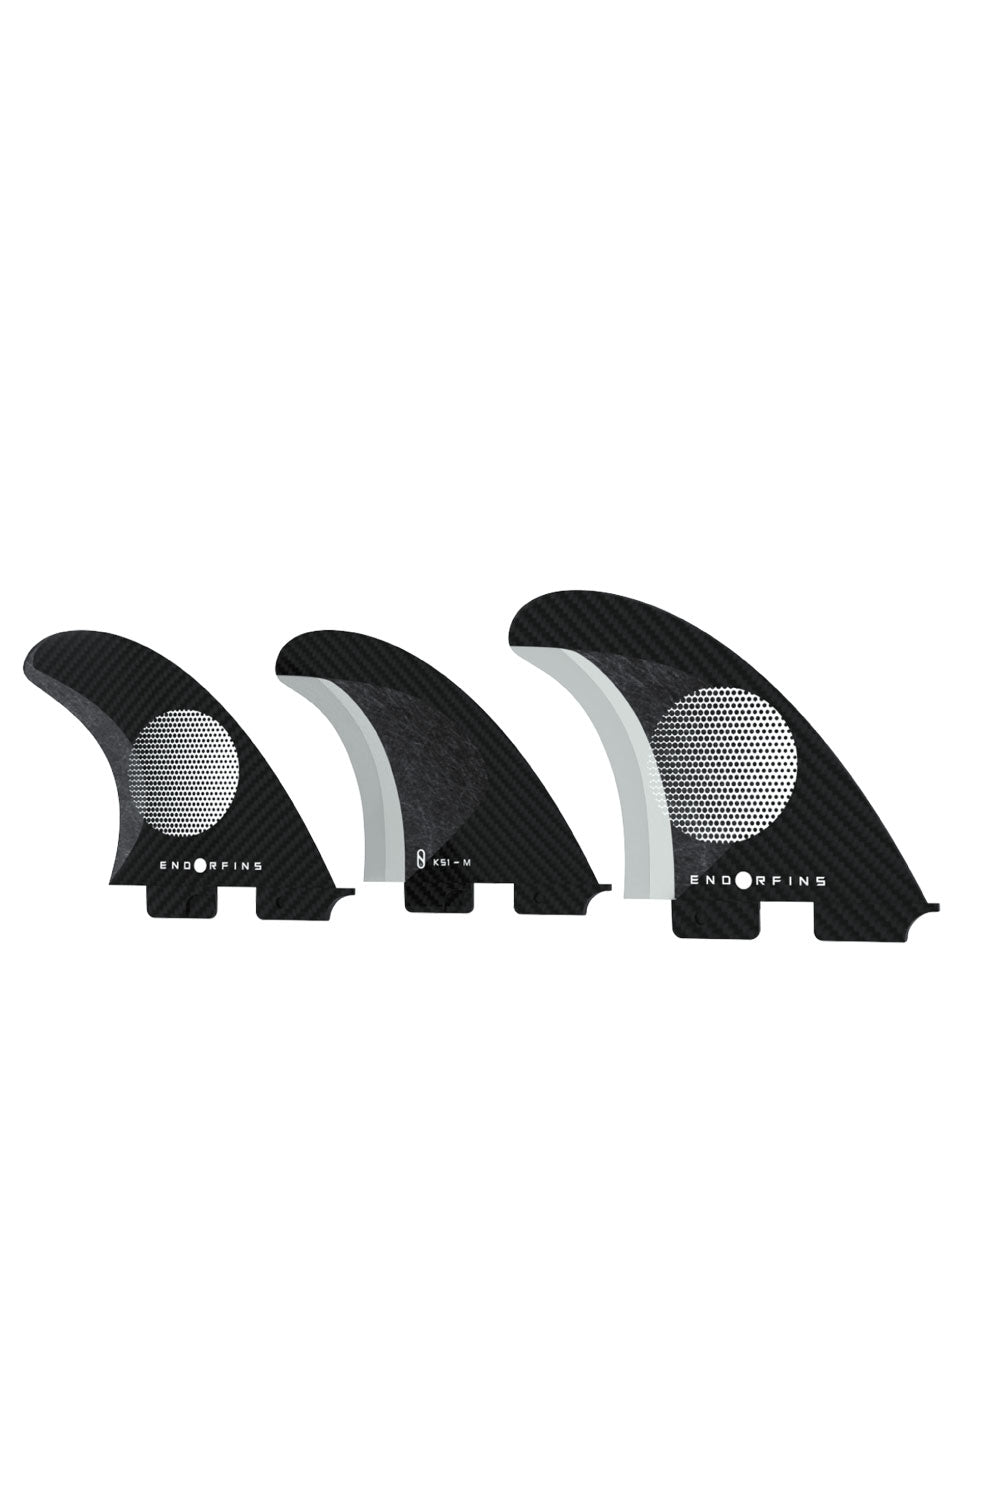 rob machado firewire tail pad traction surfing